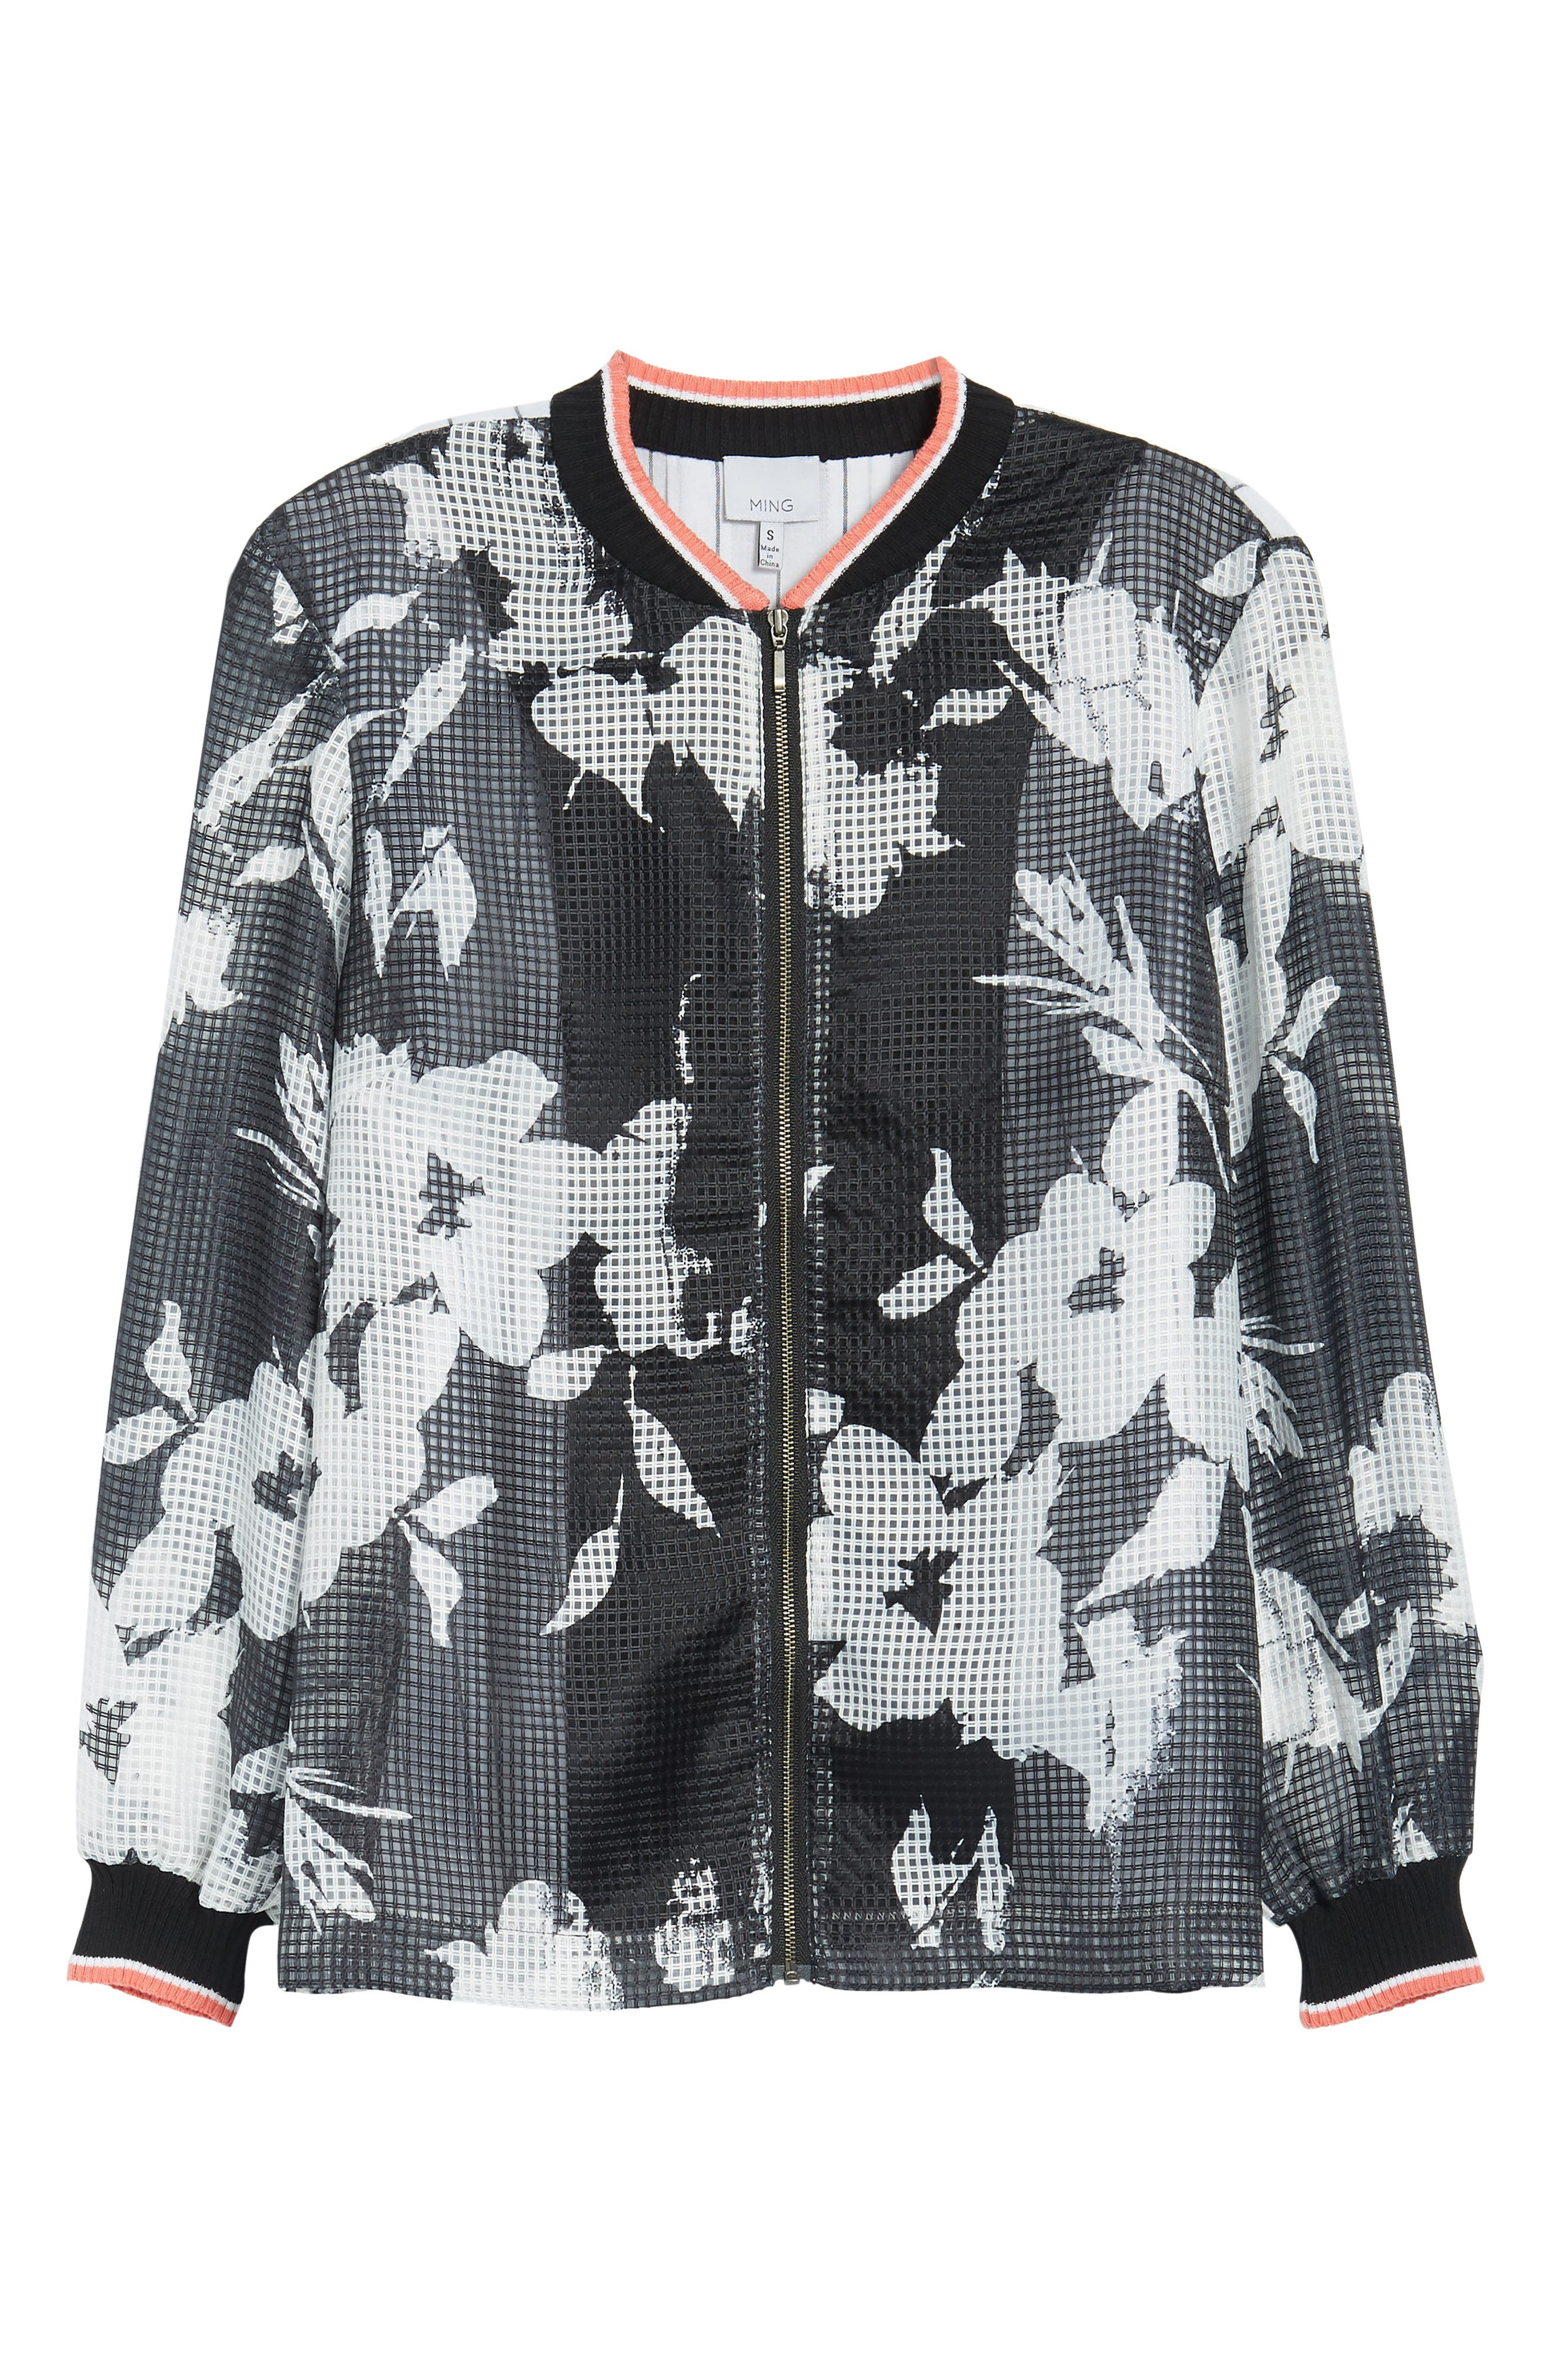 Floral Mesh Bomber Jacket,                             Alternate thumbnail 6, color,                             Black/ Daylily/ White